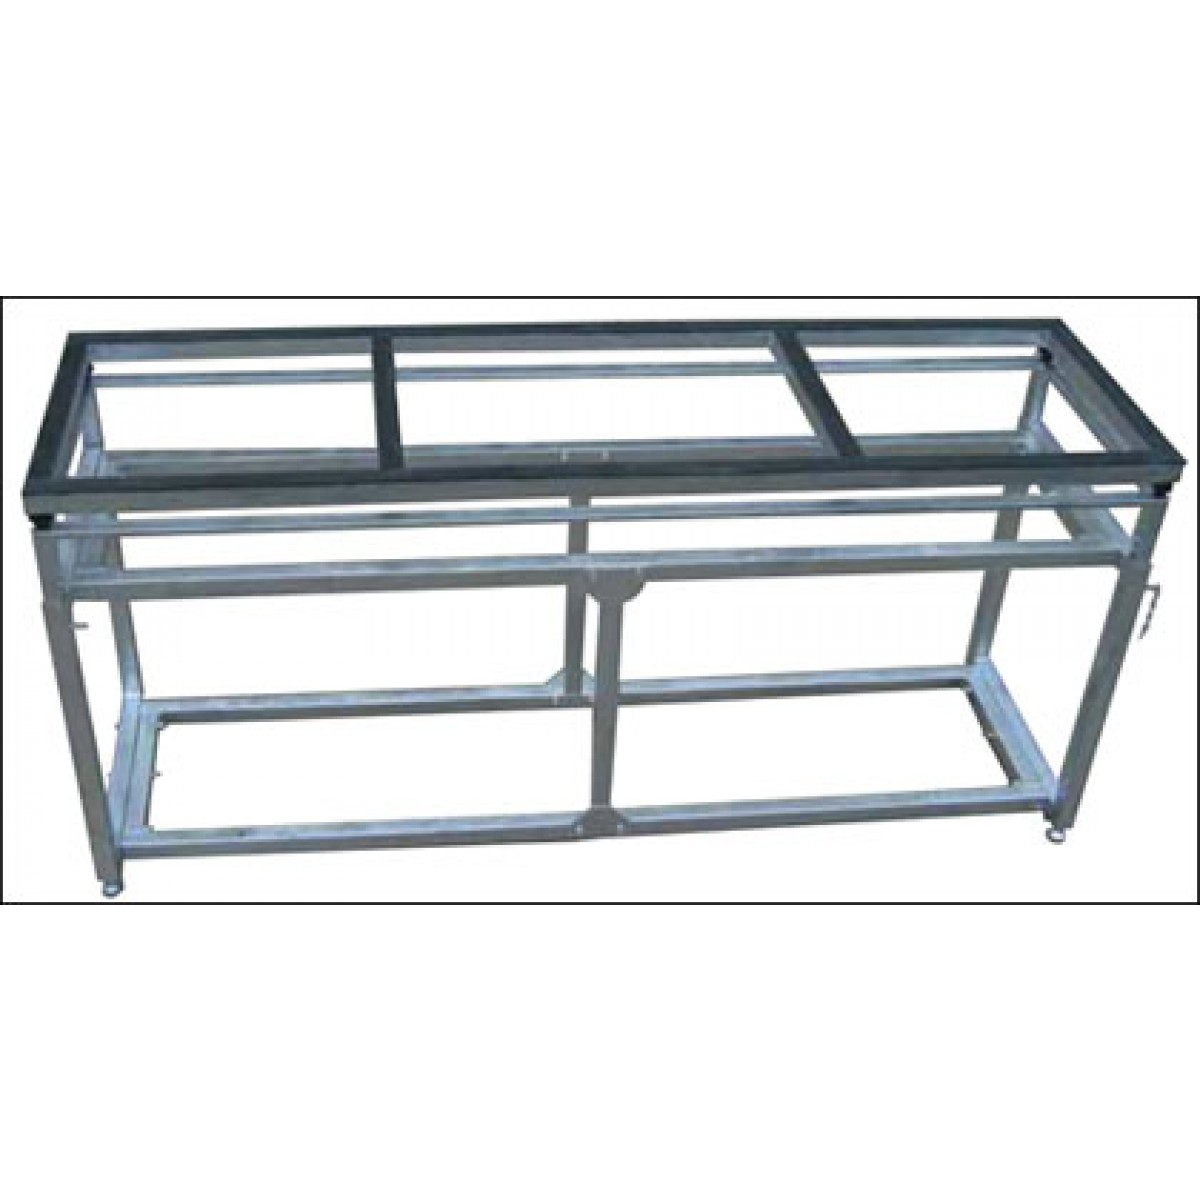 Adjustable fabrication table for Fabrication stand